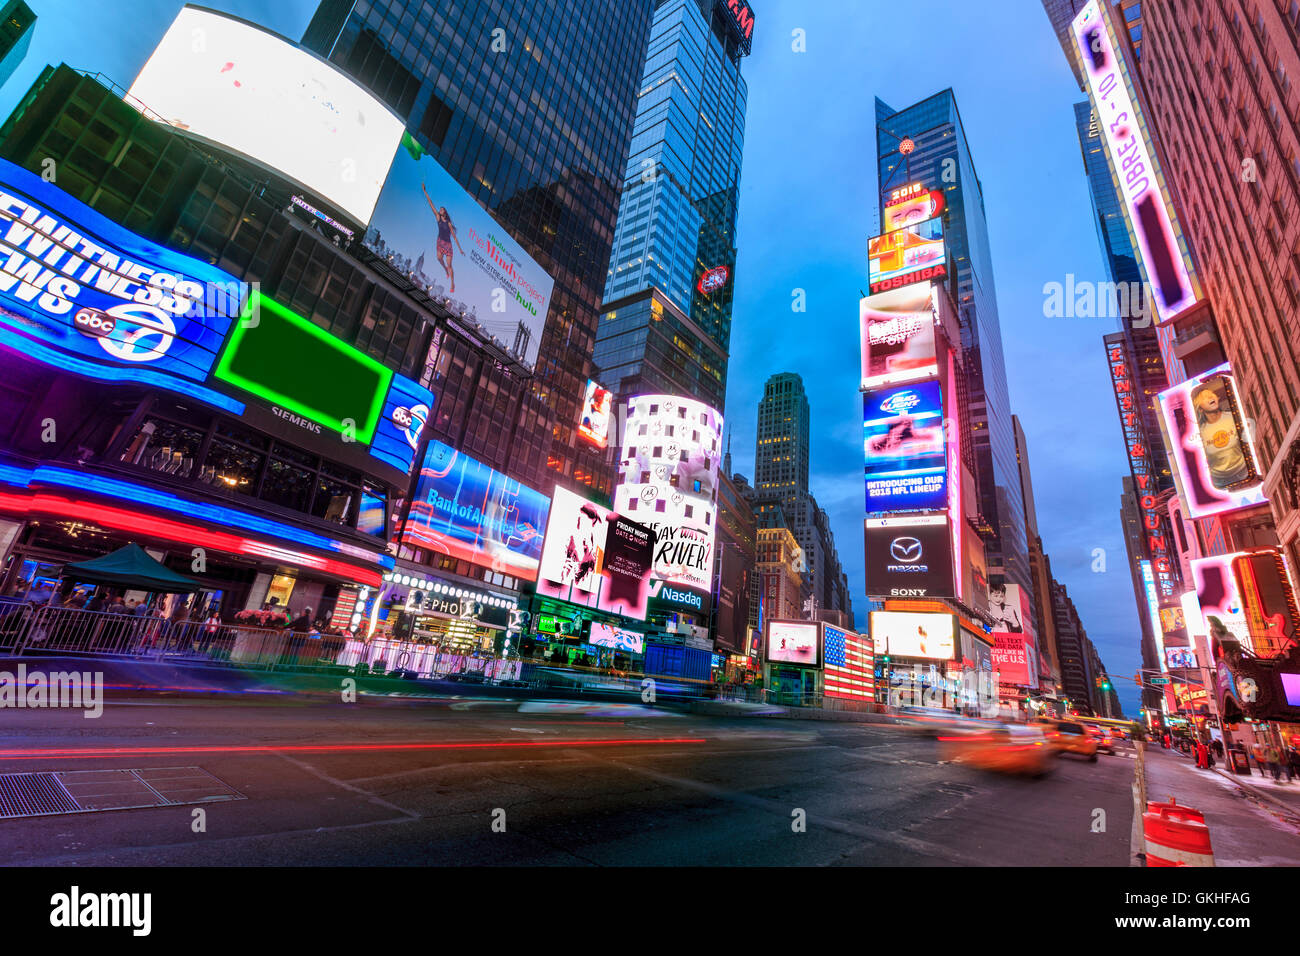 USA, New York, New York City, Times Square - Stock Image